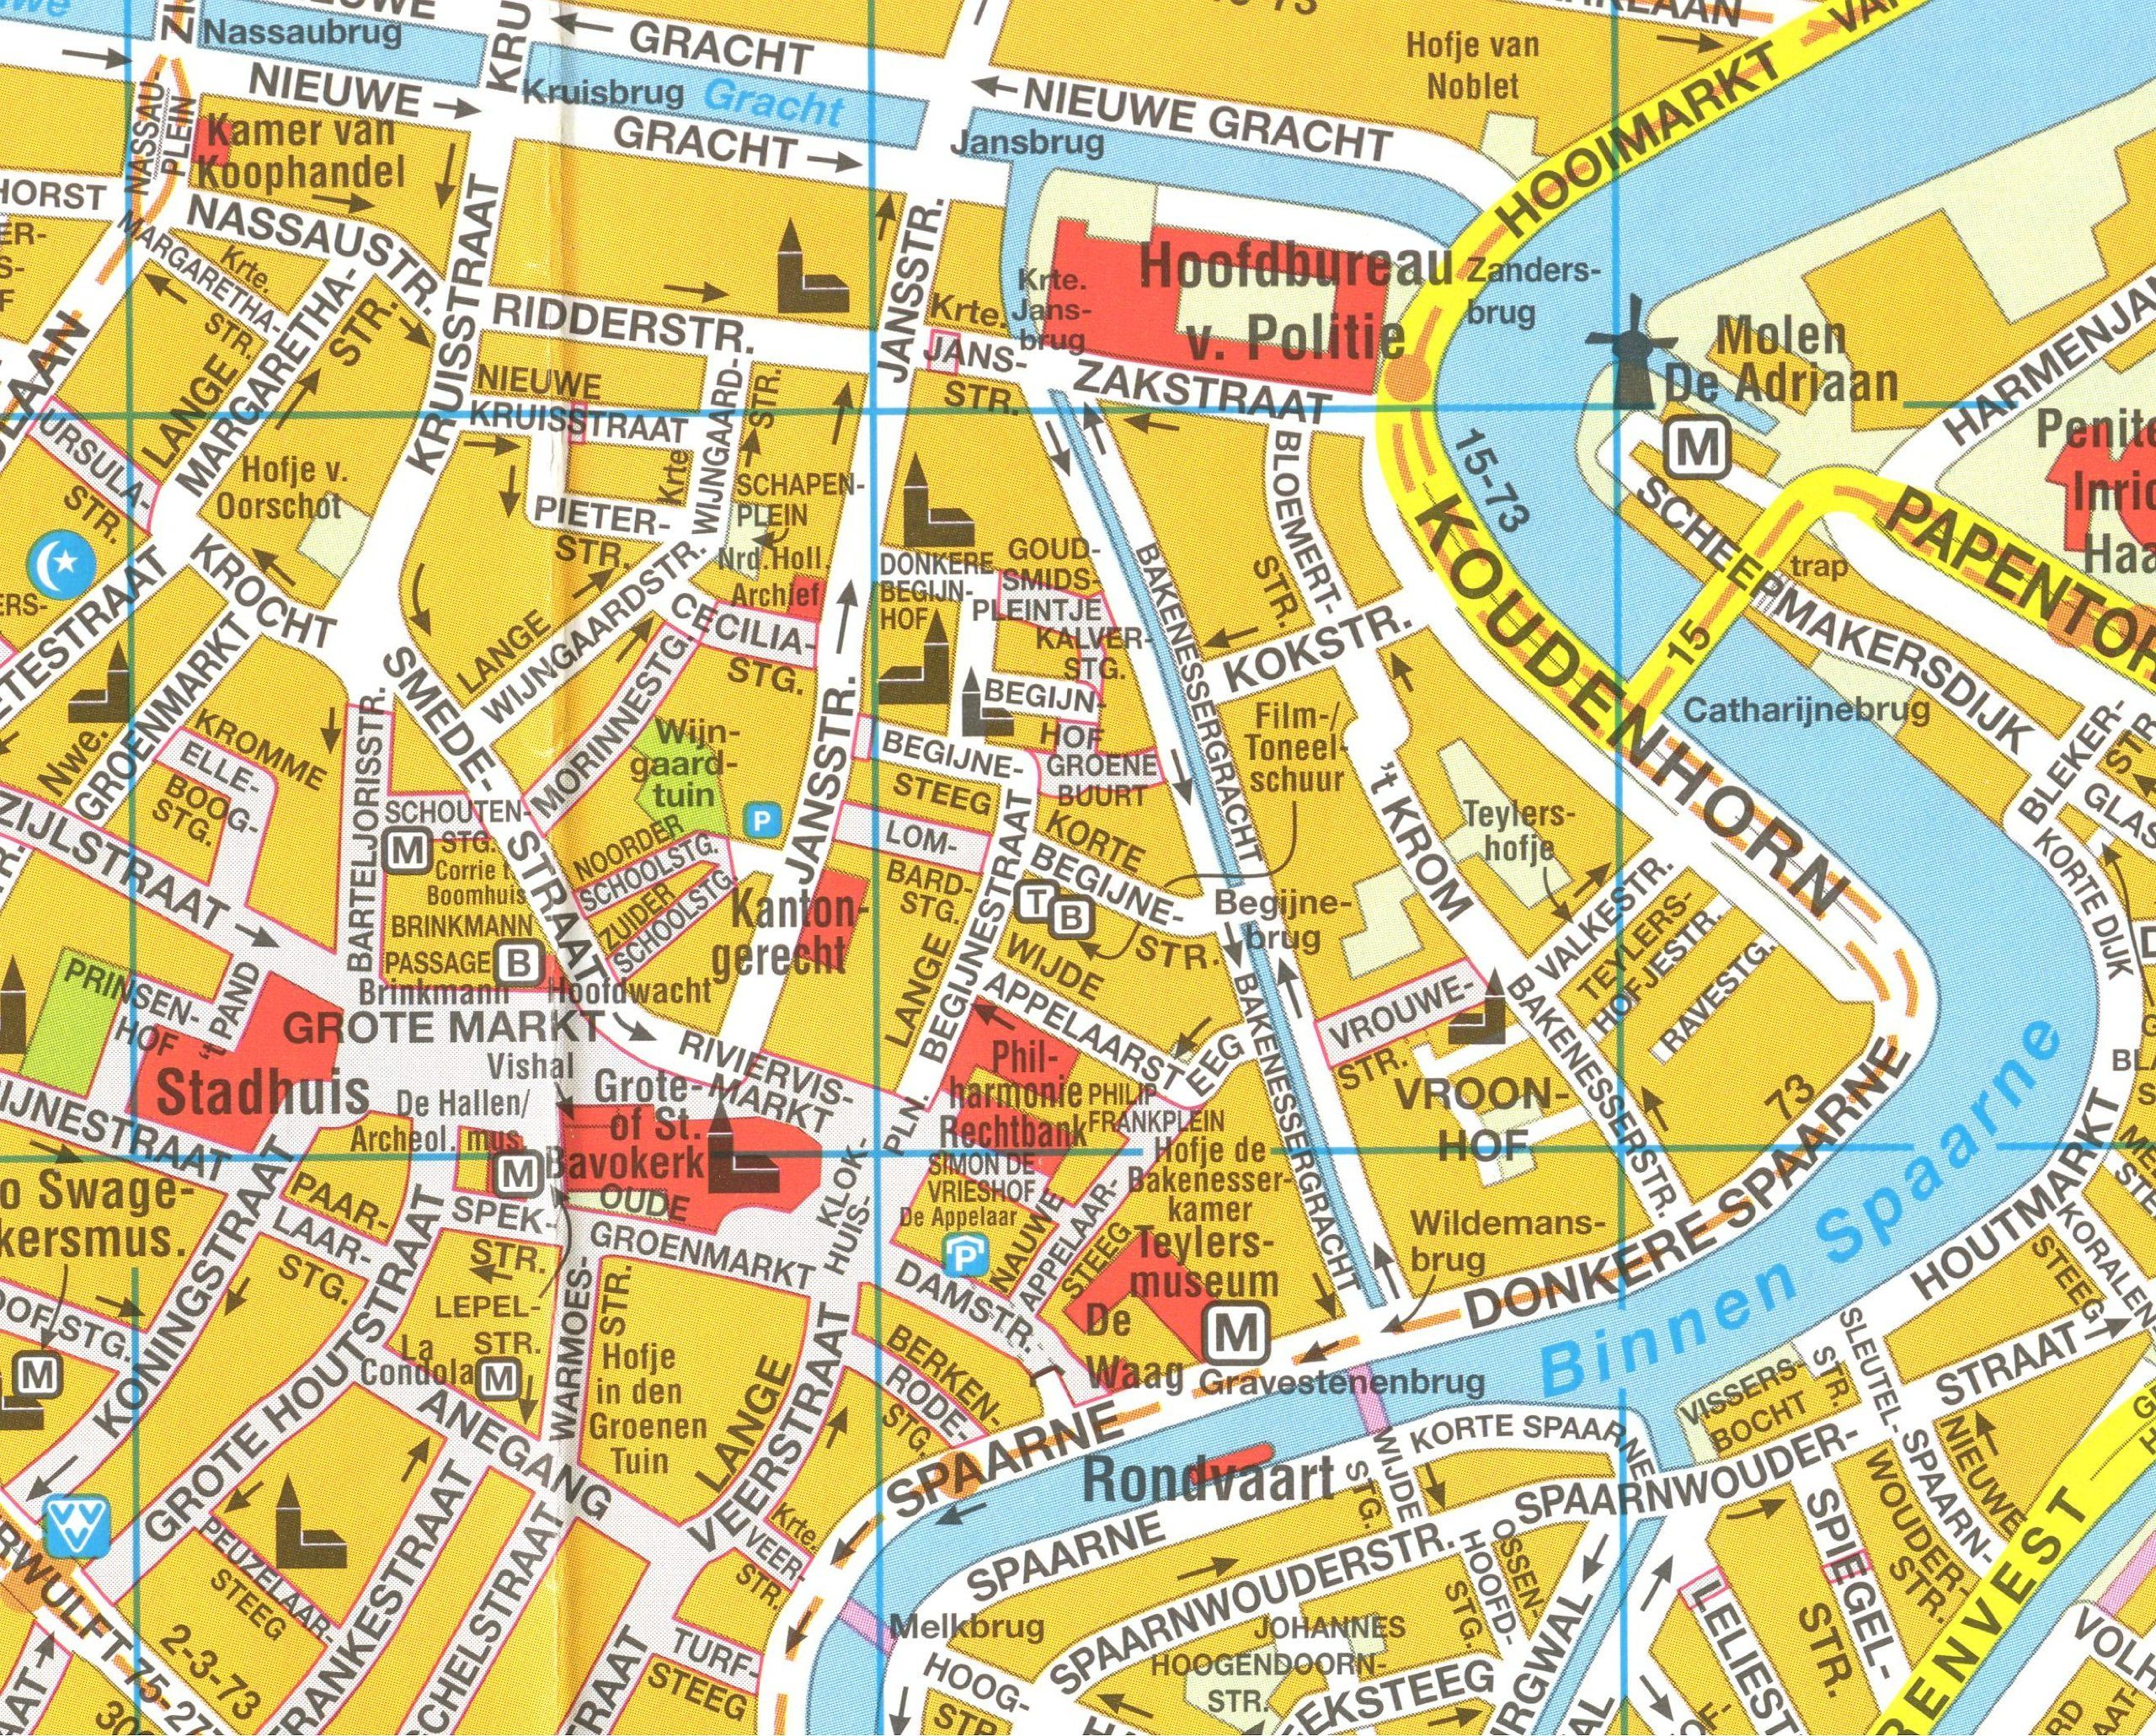 map of haarlem netherlands | Europe | Pinterest | Haarlem